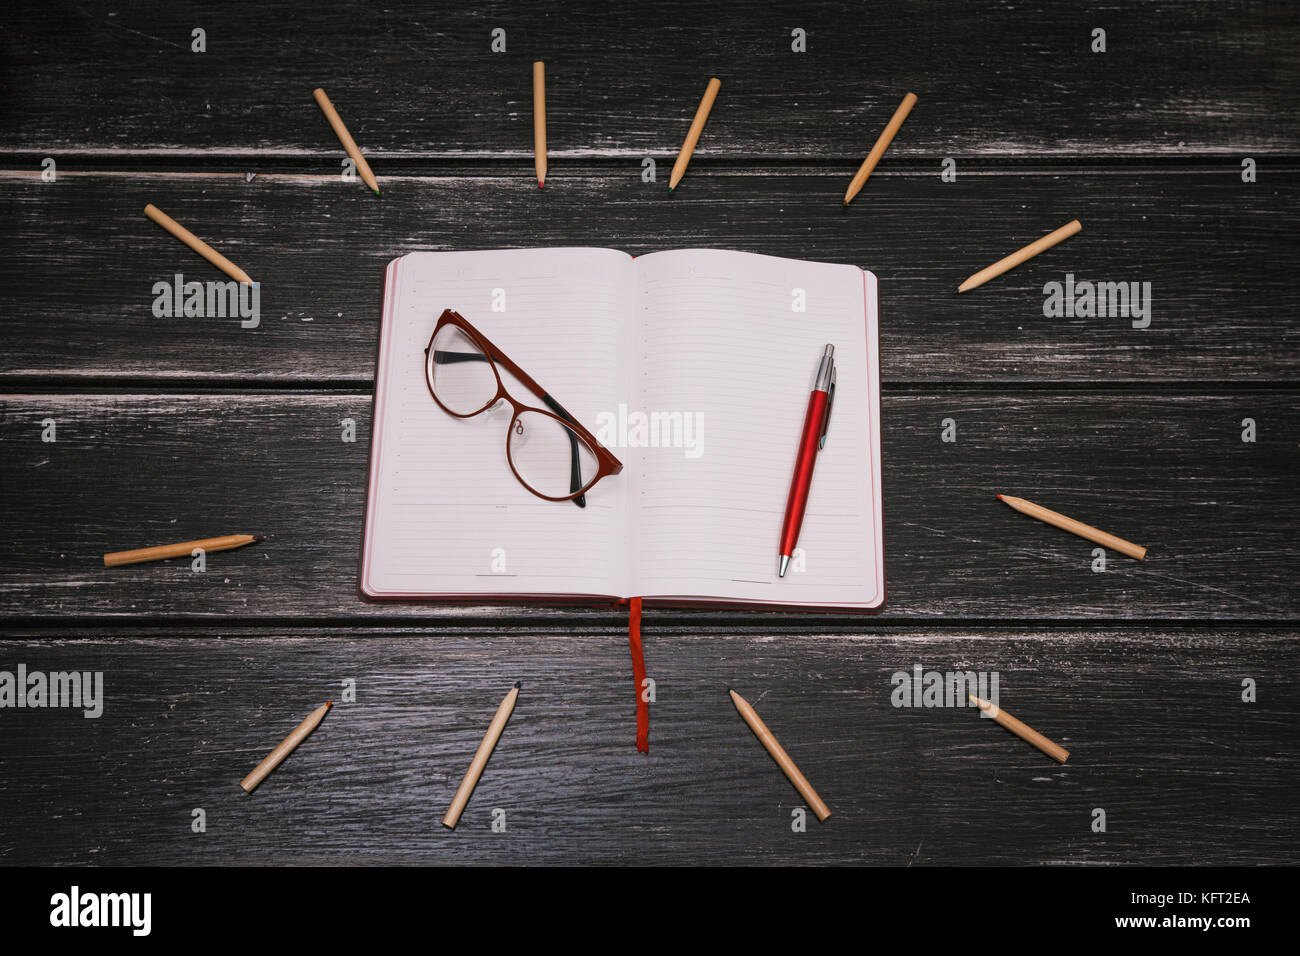 White notebook, pen and glasses and a lot of pencils on a black wooden background - Stock Image